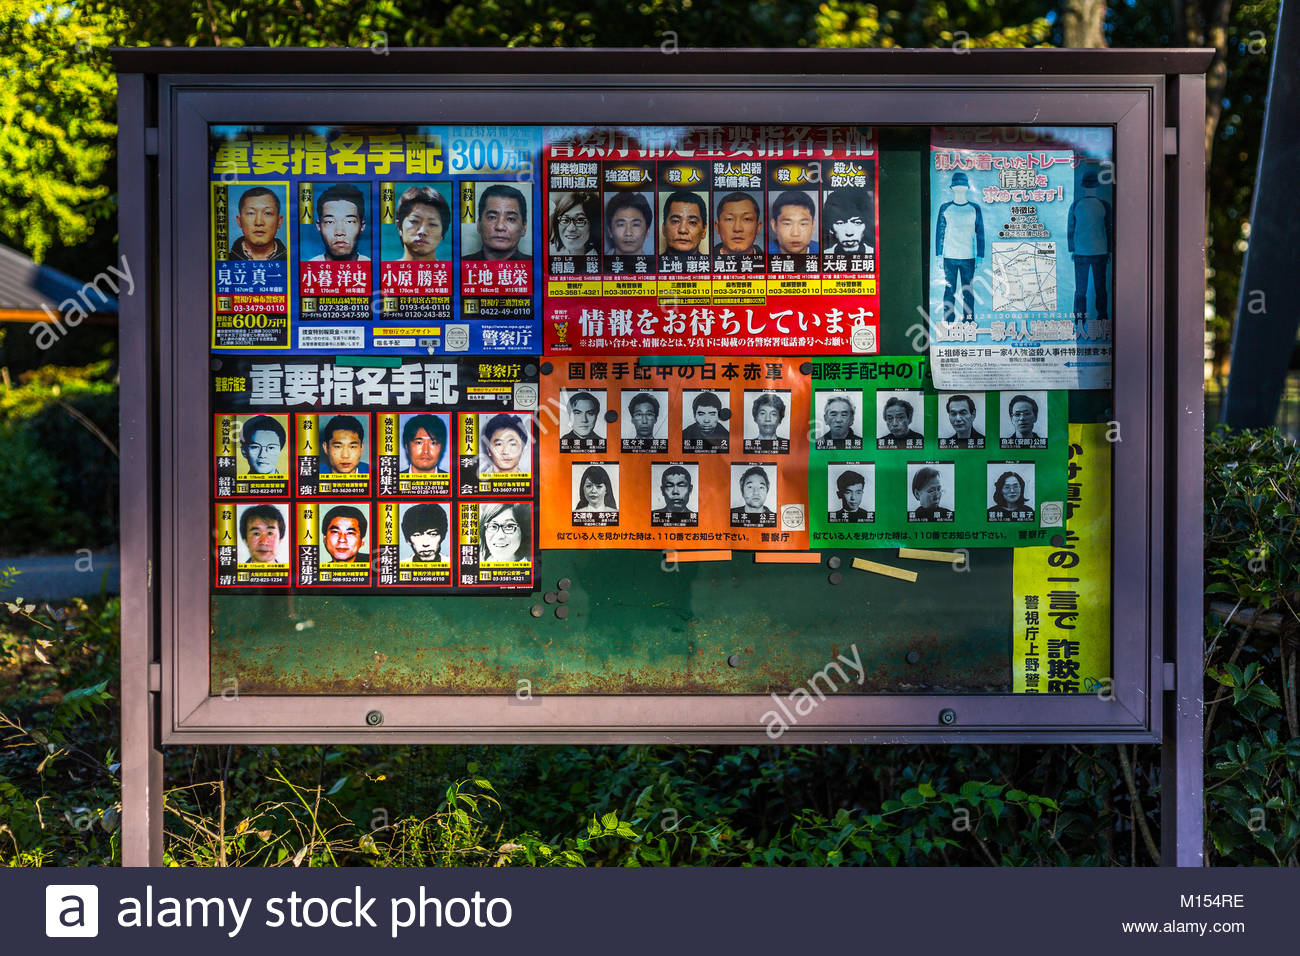 Board with criminals - Stock Image